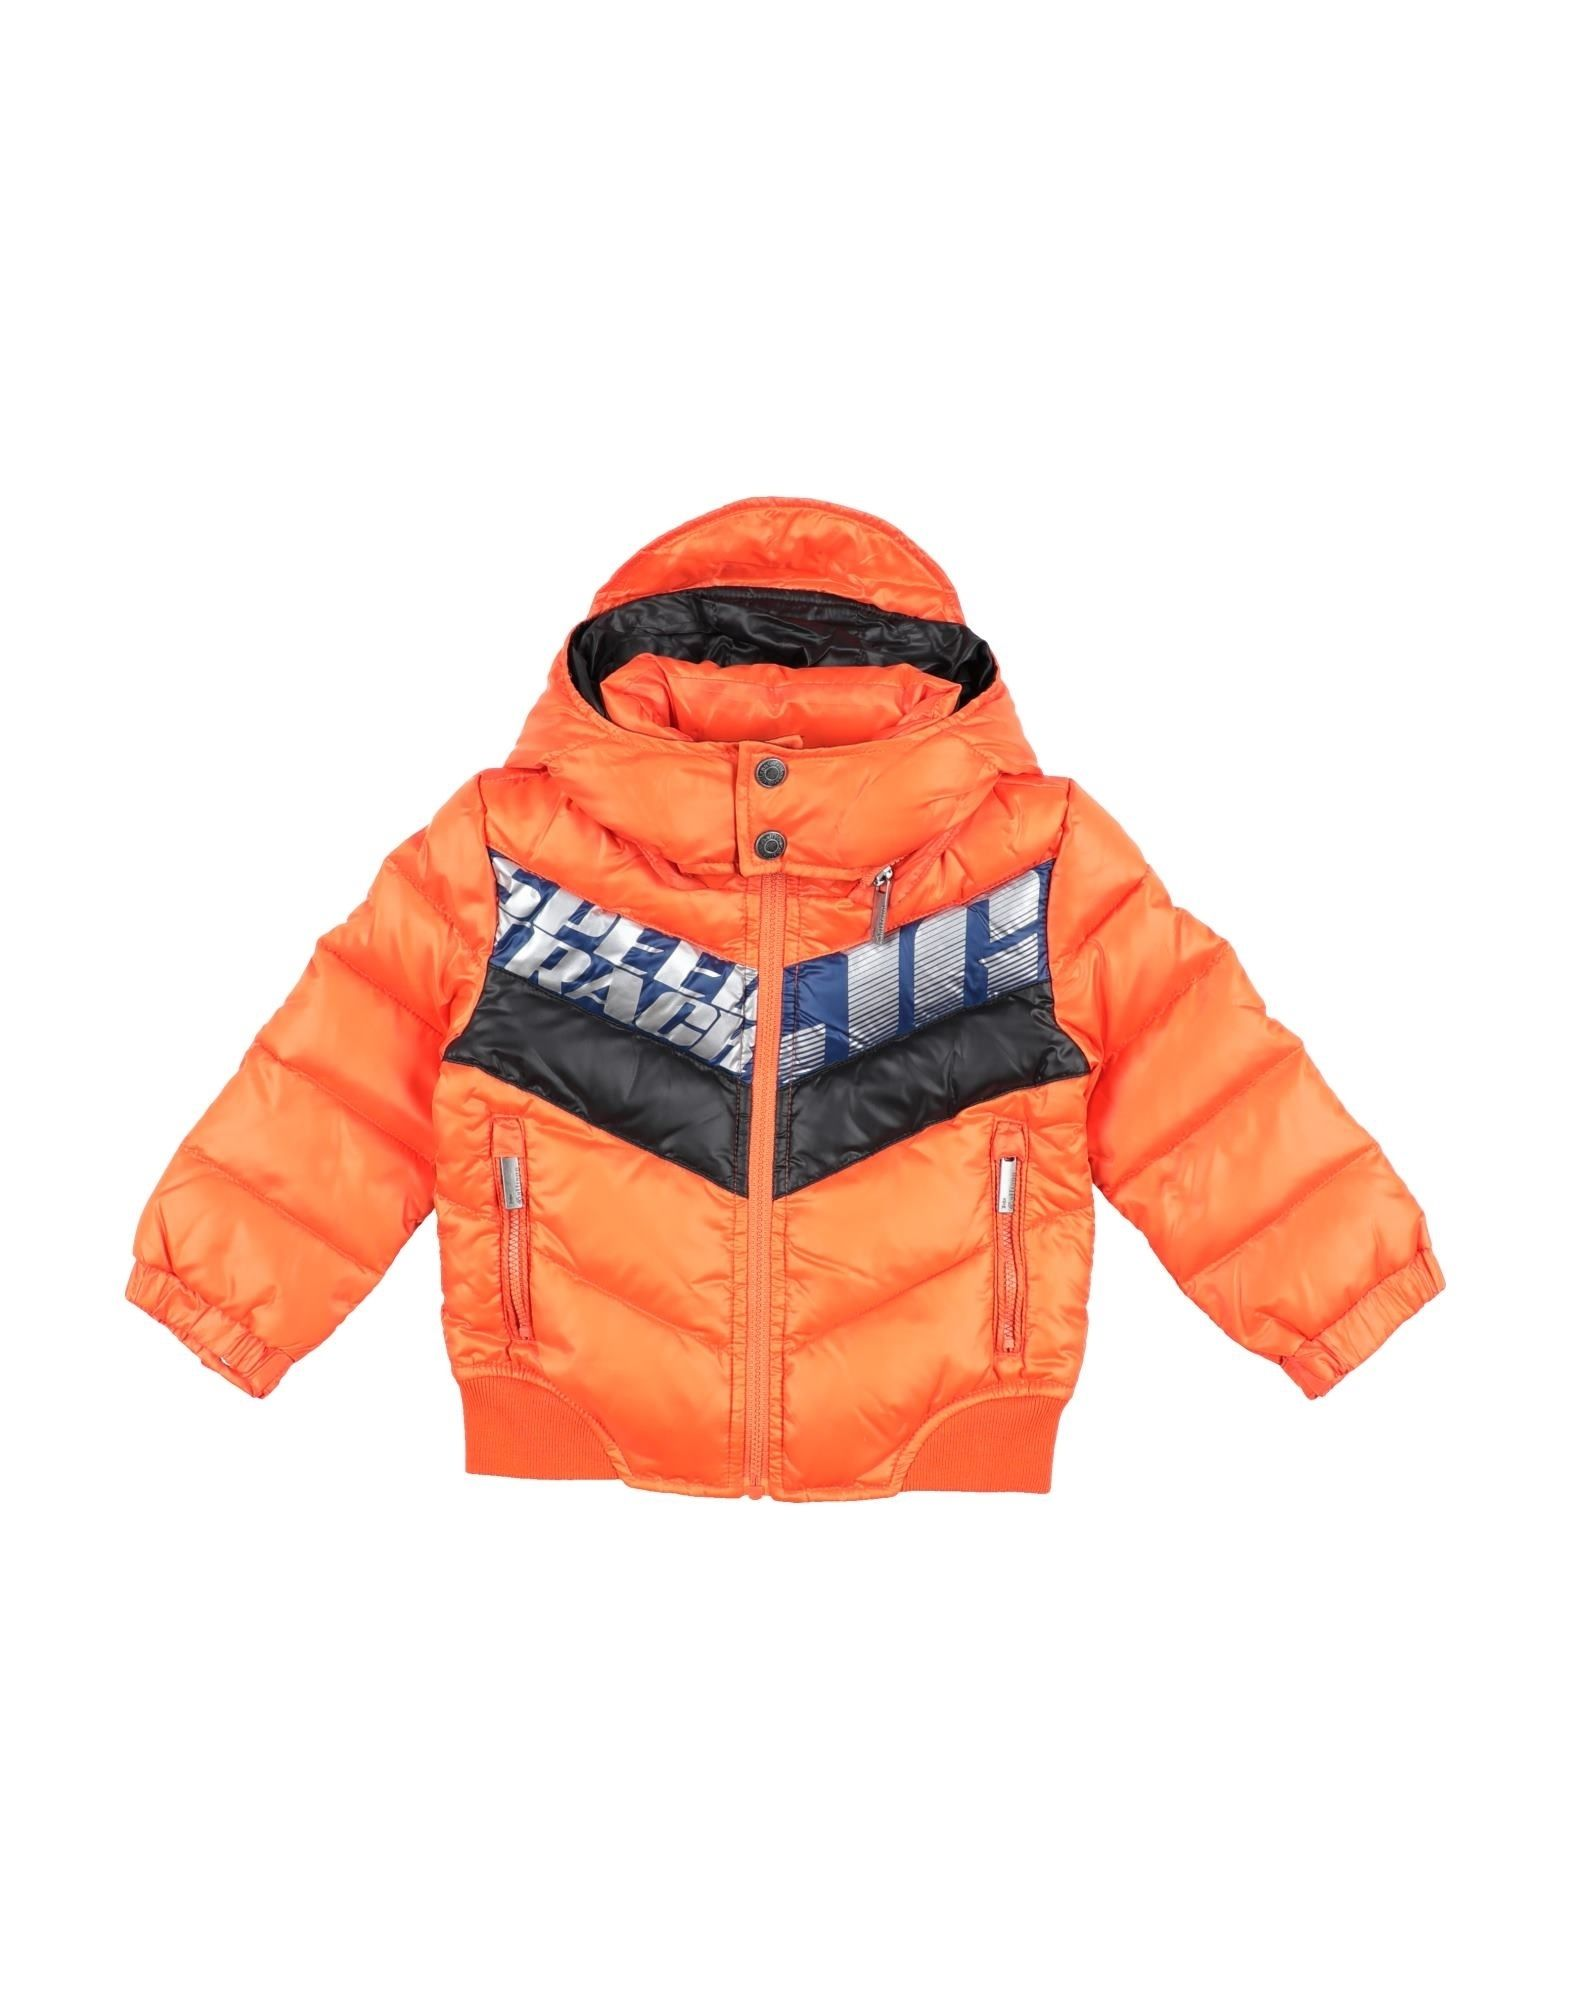 JOHN GALLIANO Steppjacke Kinder Orange von JOHN GALLIANO